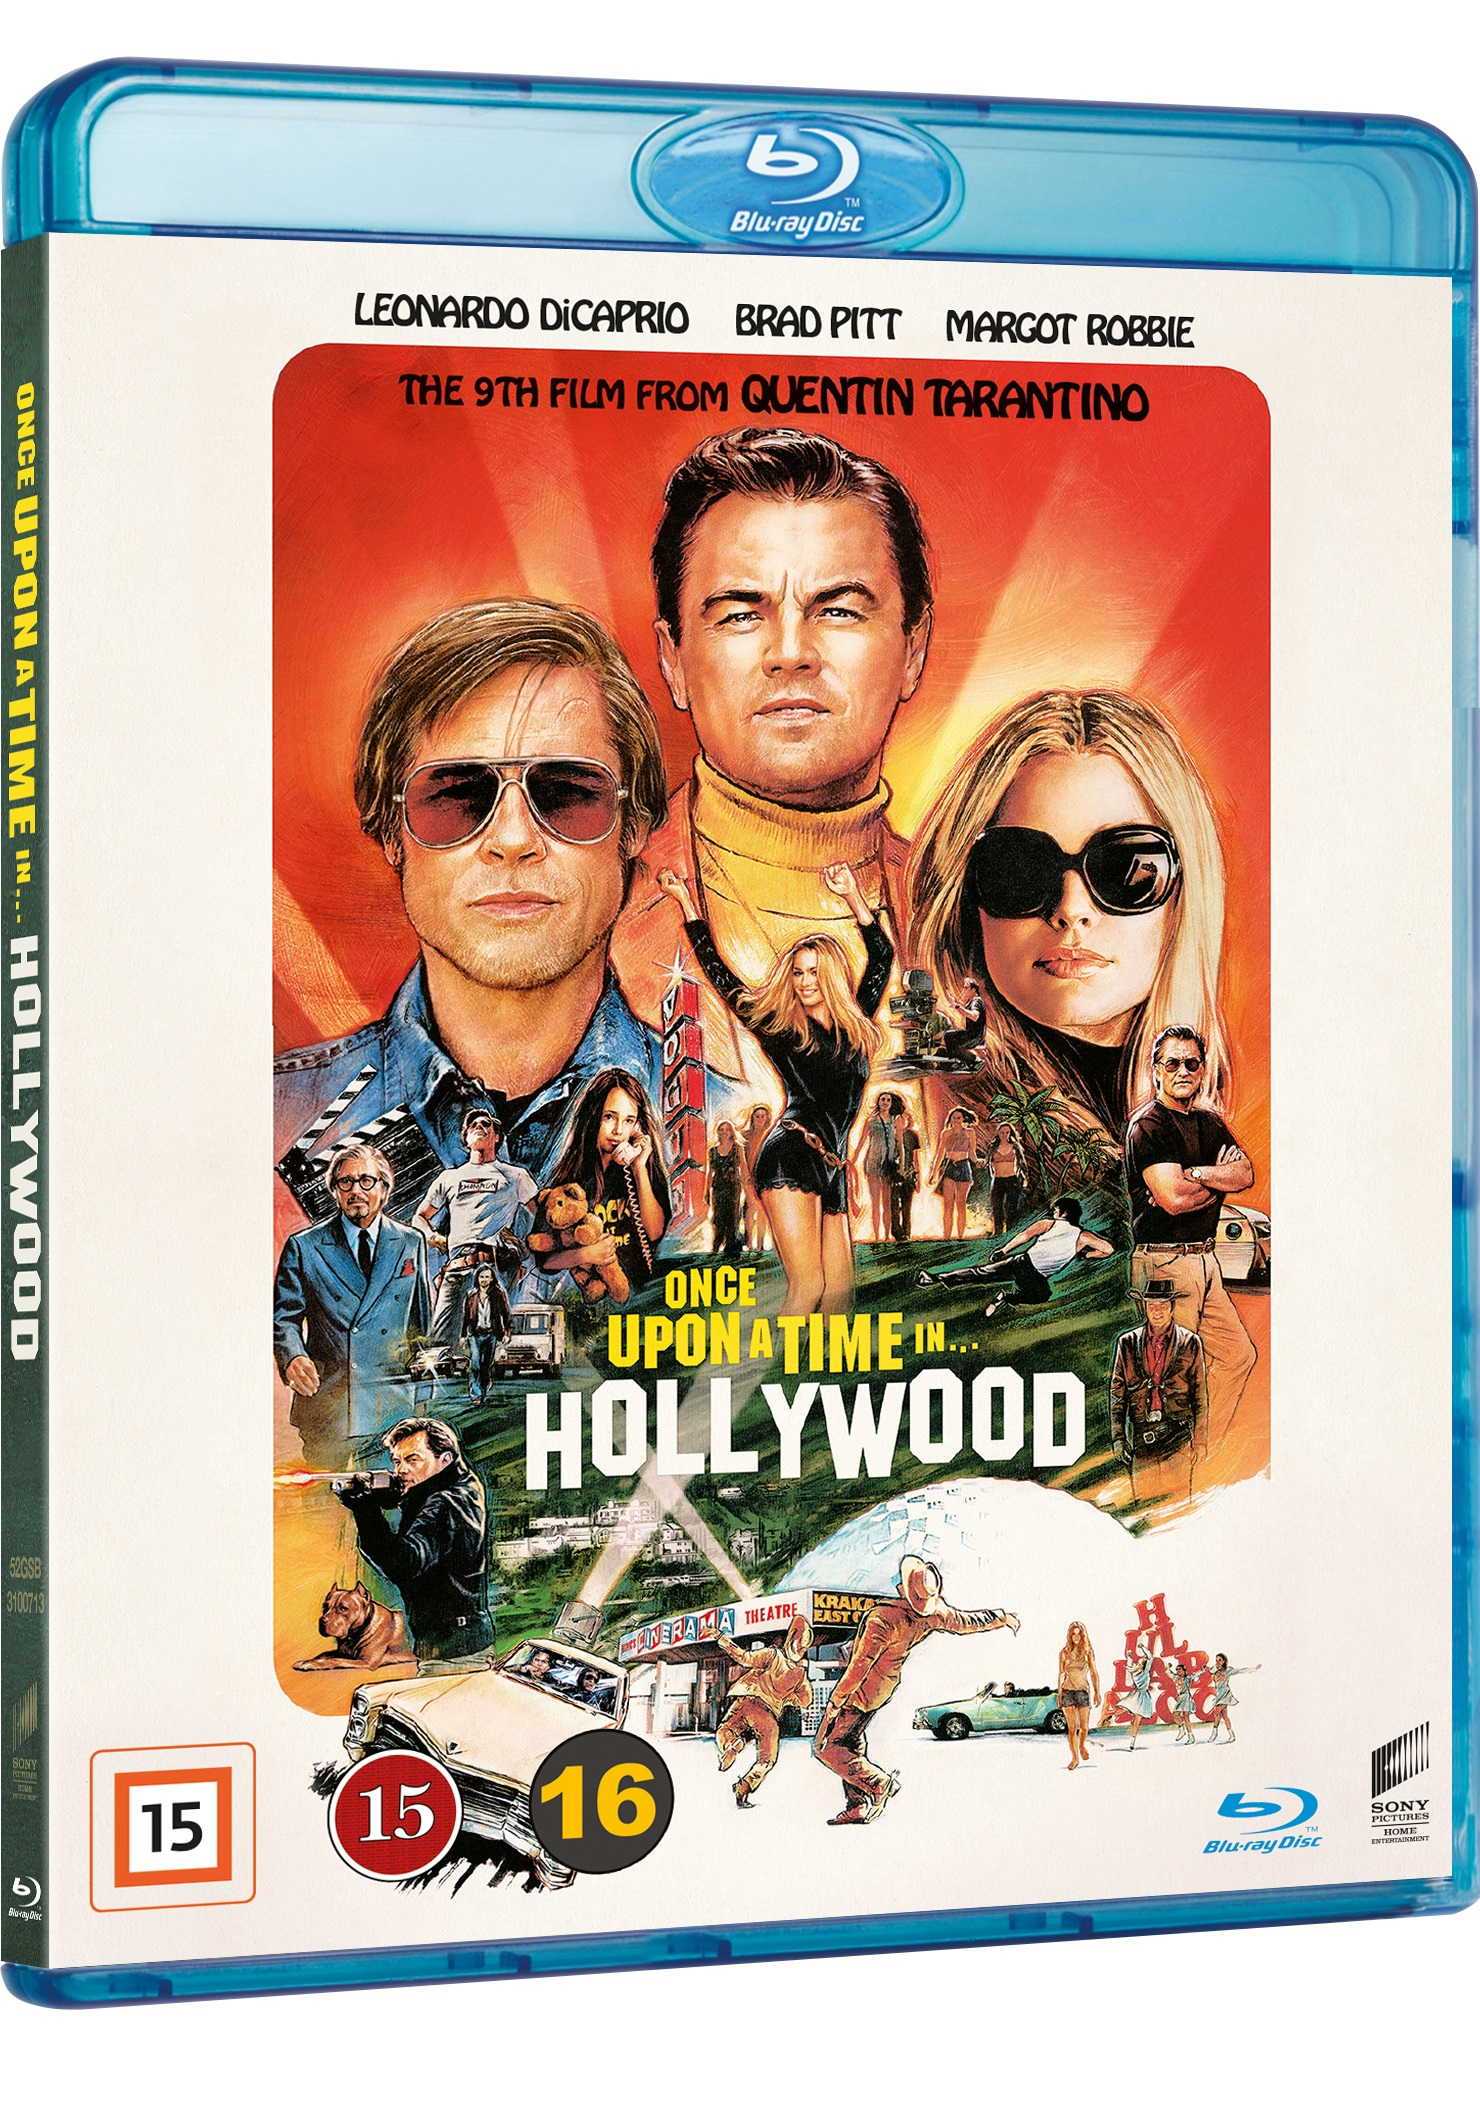 Once Upon a Time in Hollywood - Quentin Tarantino - Film -  - 7330031007130 - 27. desember 2019